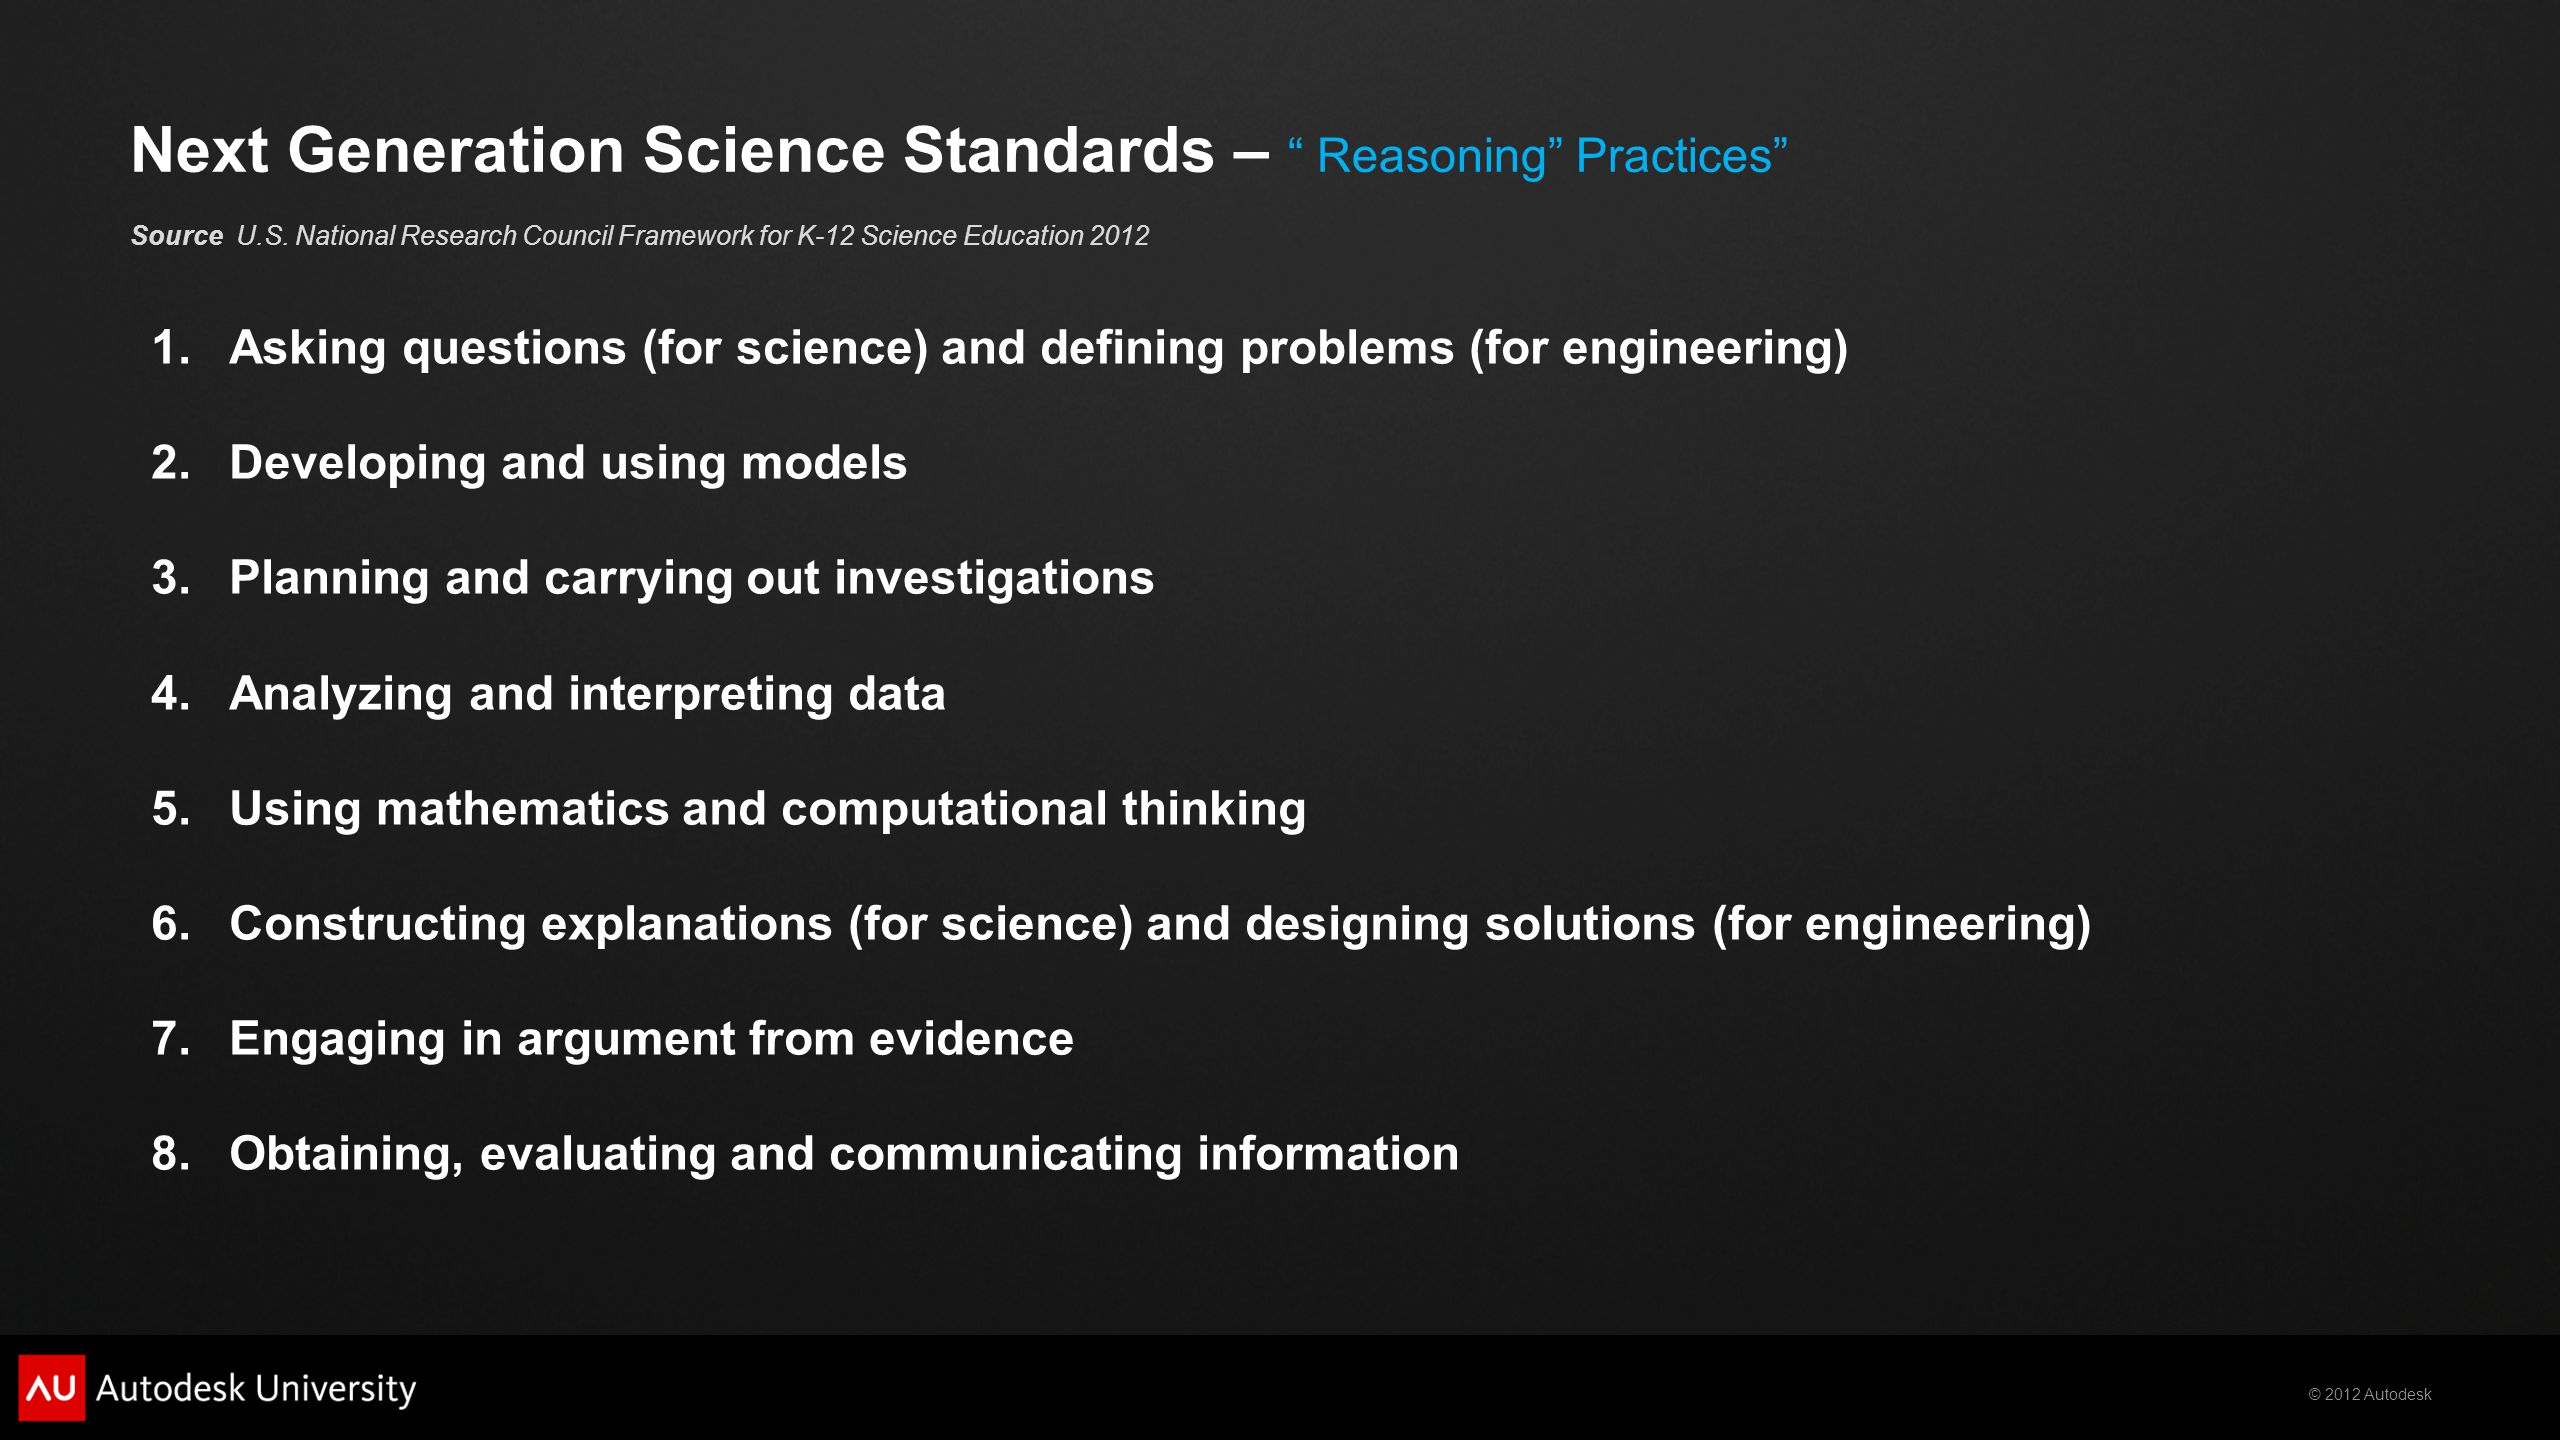 © 2012 Autodesk 1.Asking questions (for science) and defining problems (for engineering) 2.Developing and using models 3.Planning and carrying out investigations 4.Analyzing and interpreting data 5.Using mathematics and computational thinking 6.Constructing explanations (for science) and designing solutions (for engineering) 7.Engaging in argument from evidence 8.Obtaining, evaluating and communicating information Next Generation Science Standards – Reasoning Practices Source U.S.